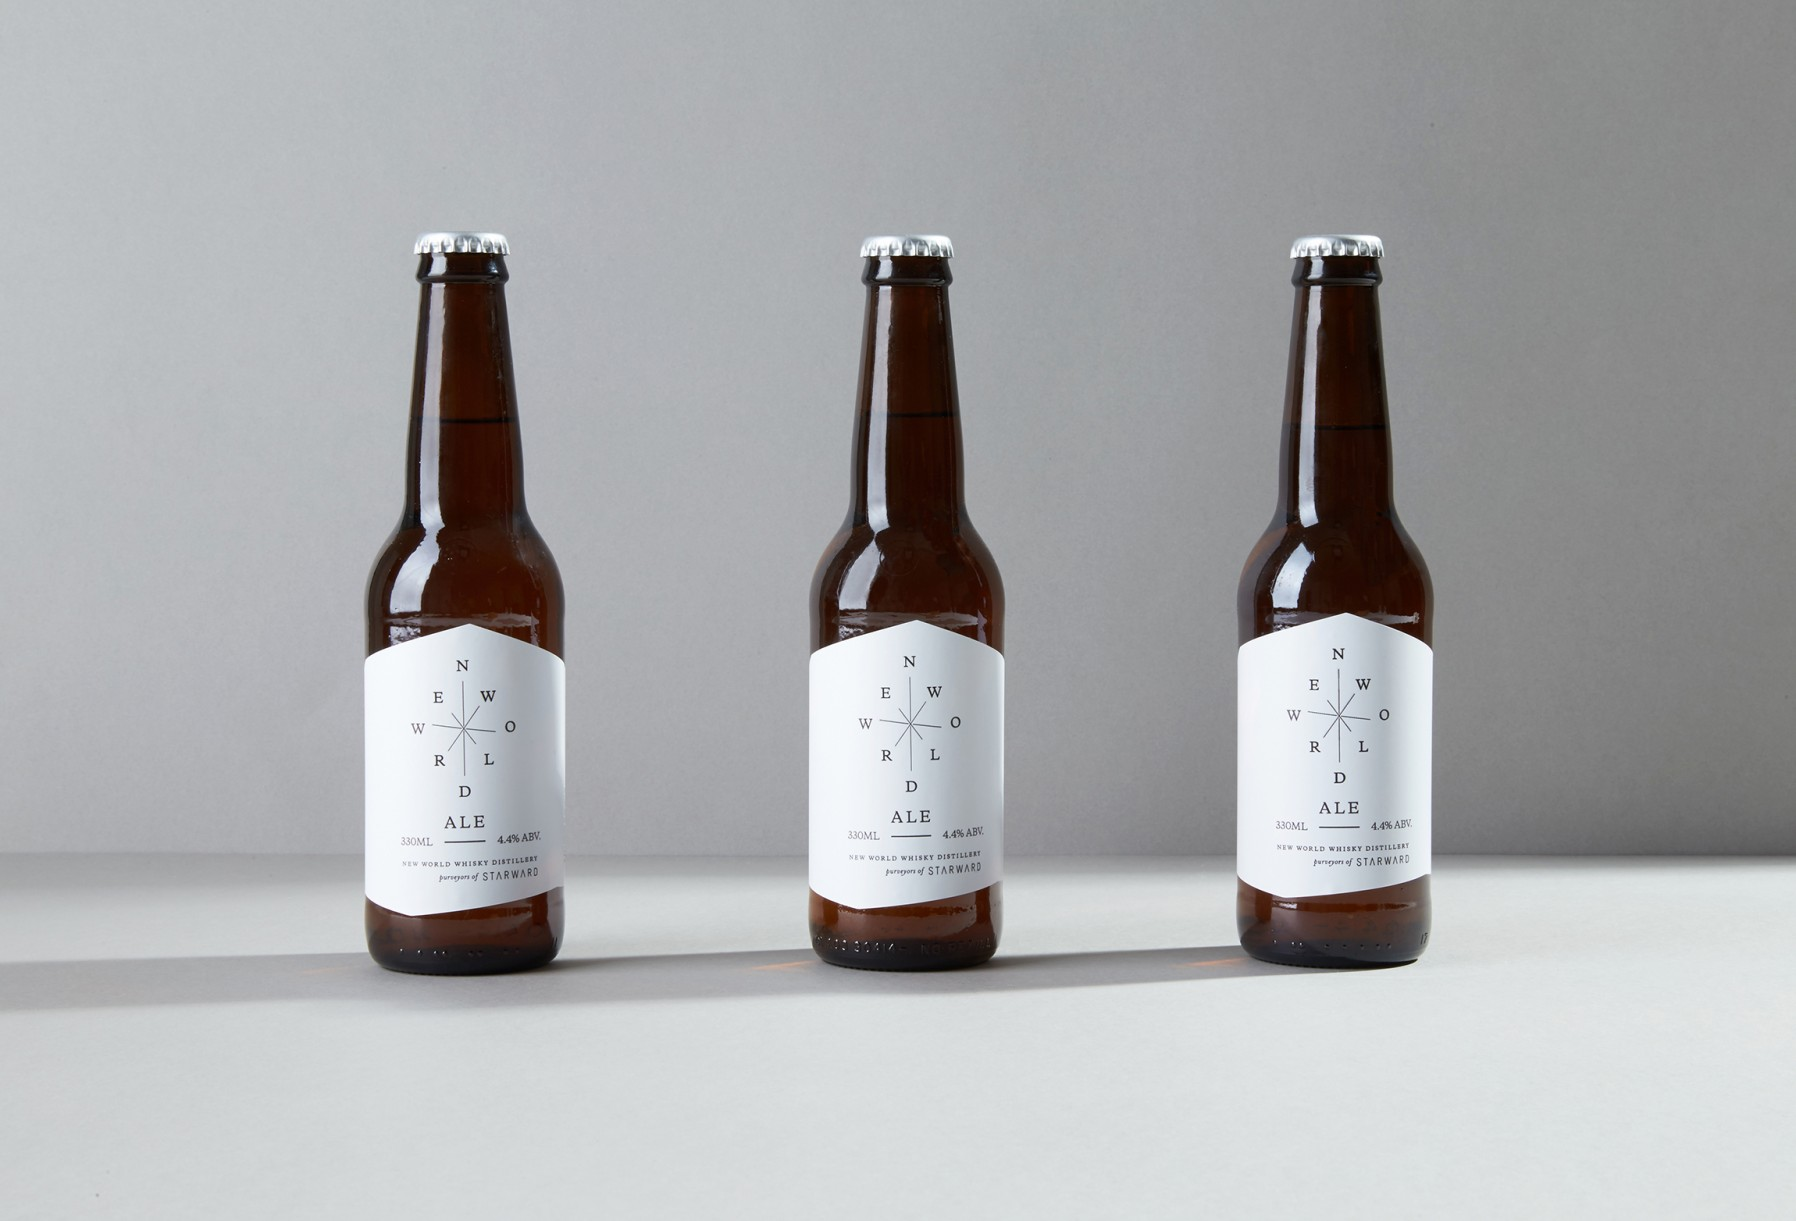 starward beer label design melbourne